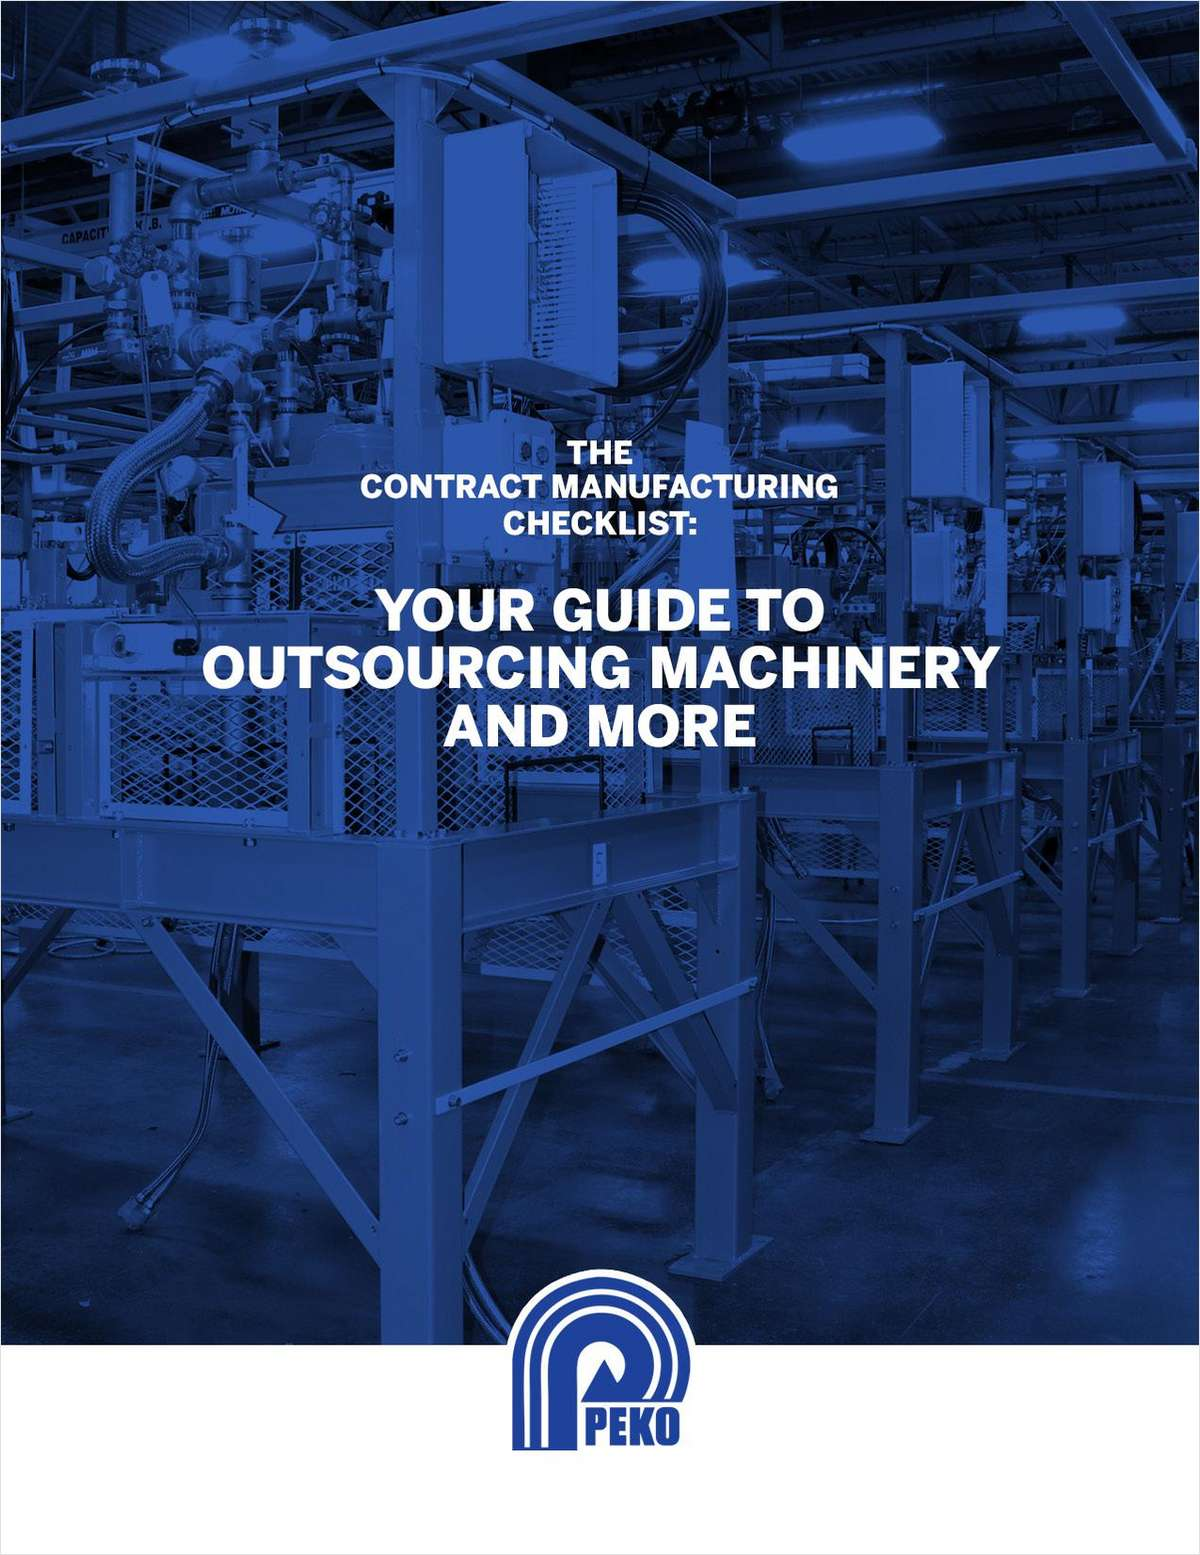 The Contract Manufacturing Checklist: Your Guide to Outsourcing Machinery And More